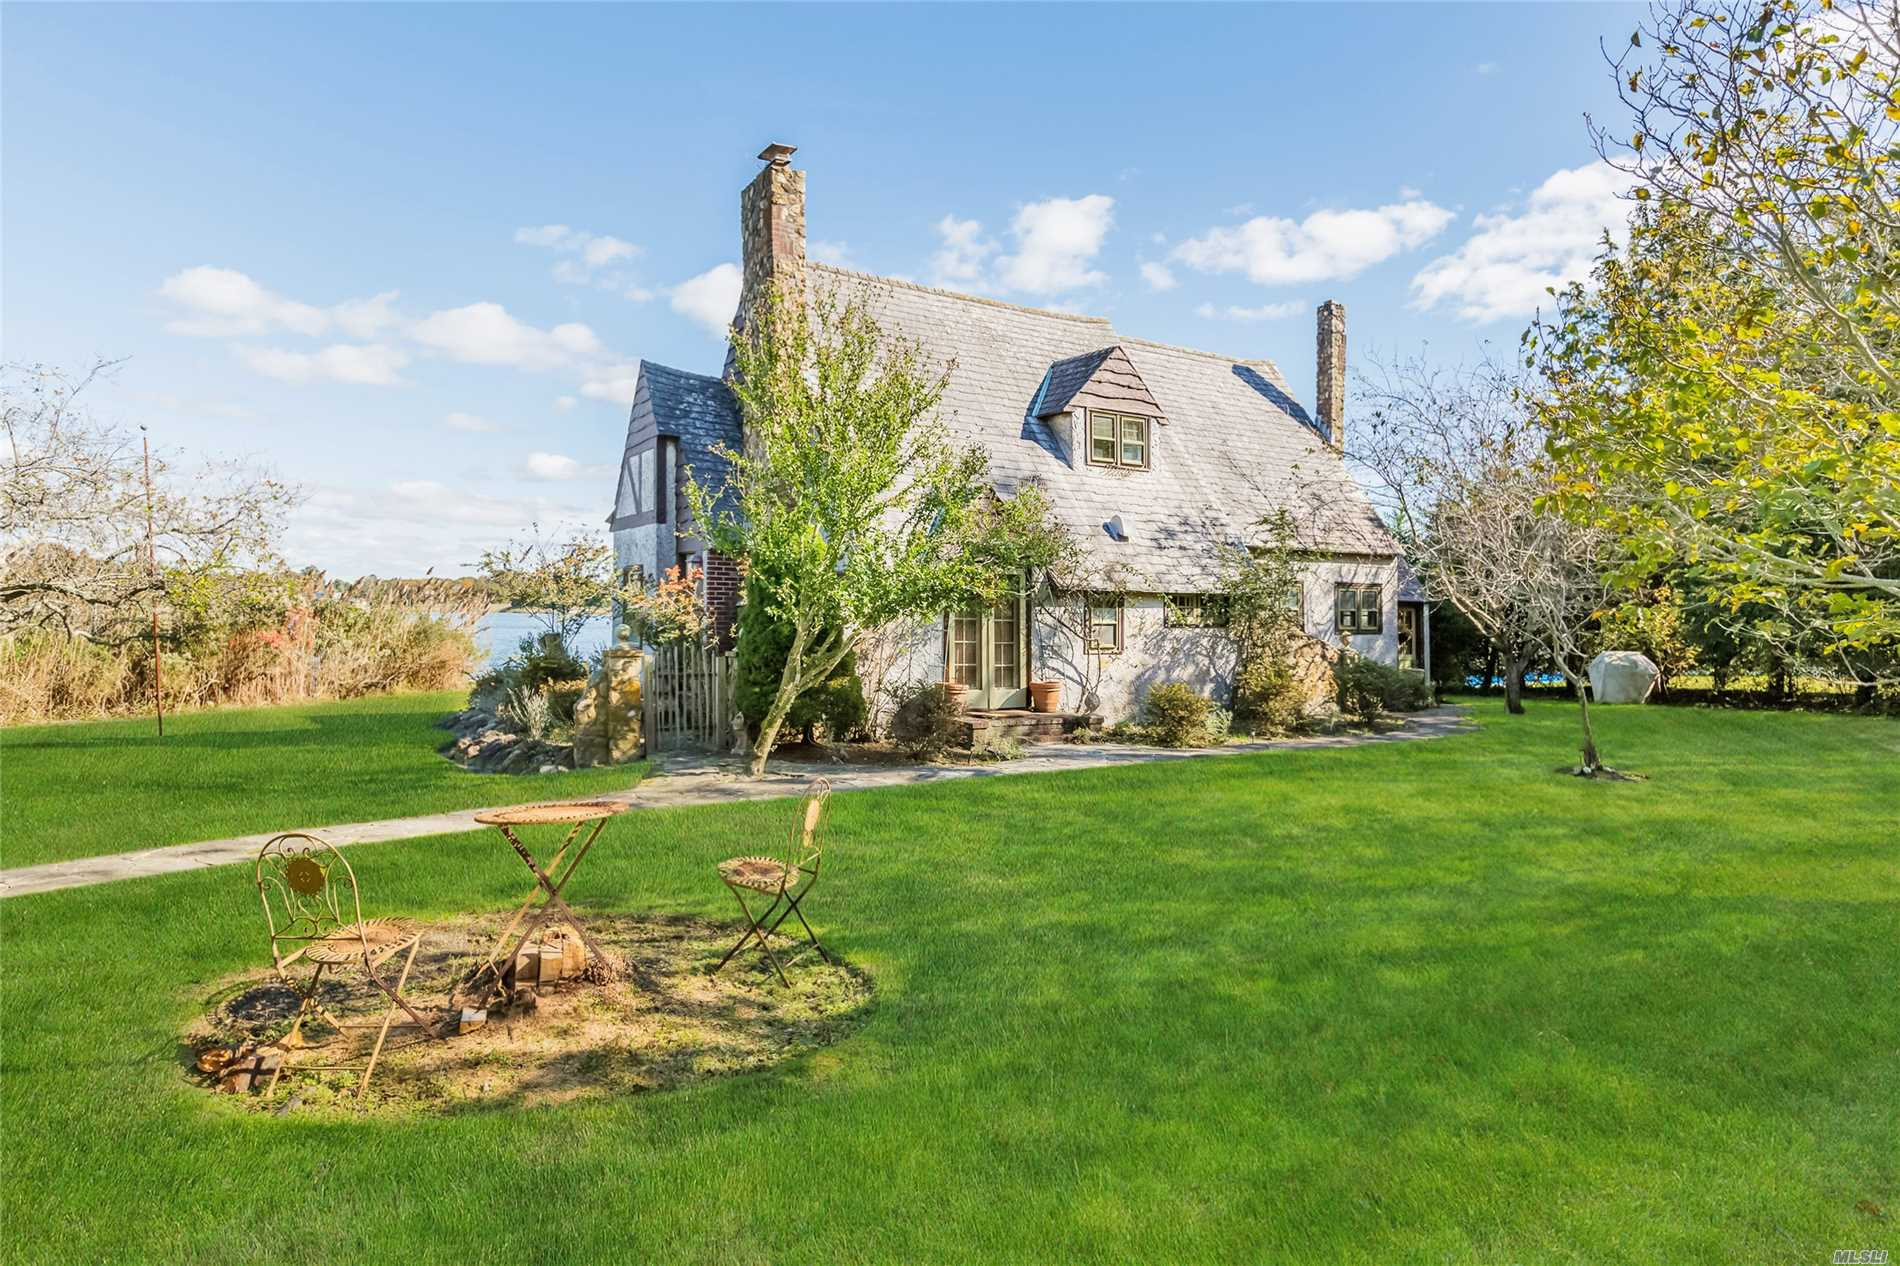 123 Paquatuck Ave - East Moriches, New York